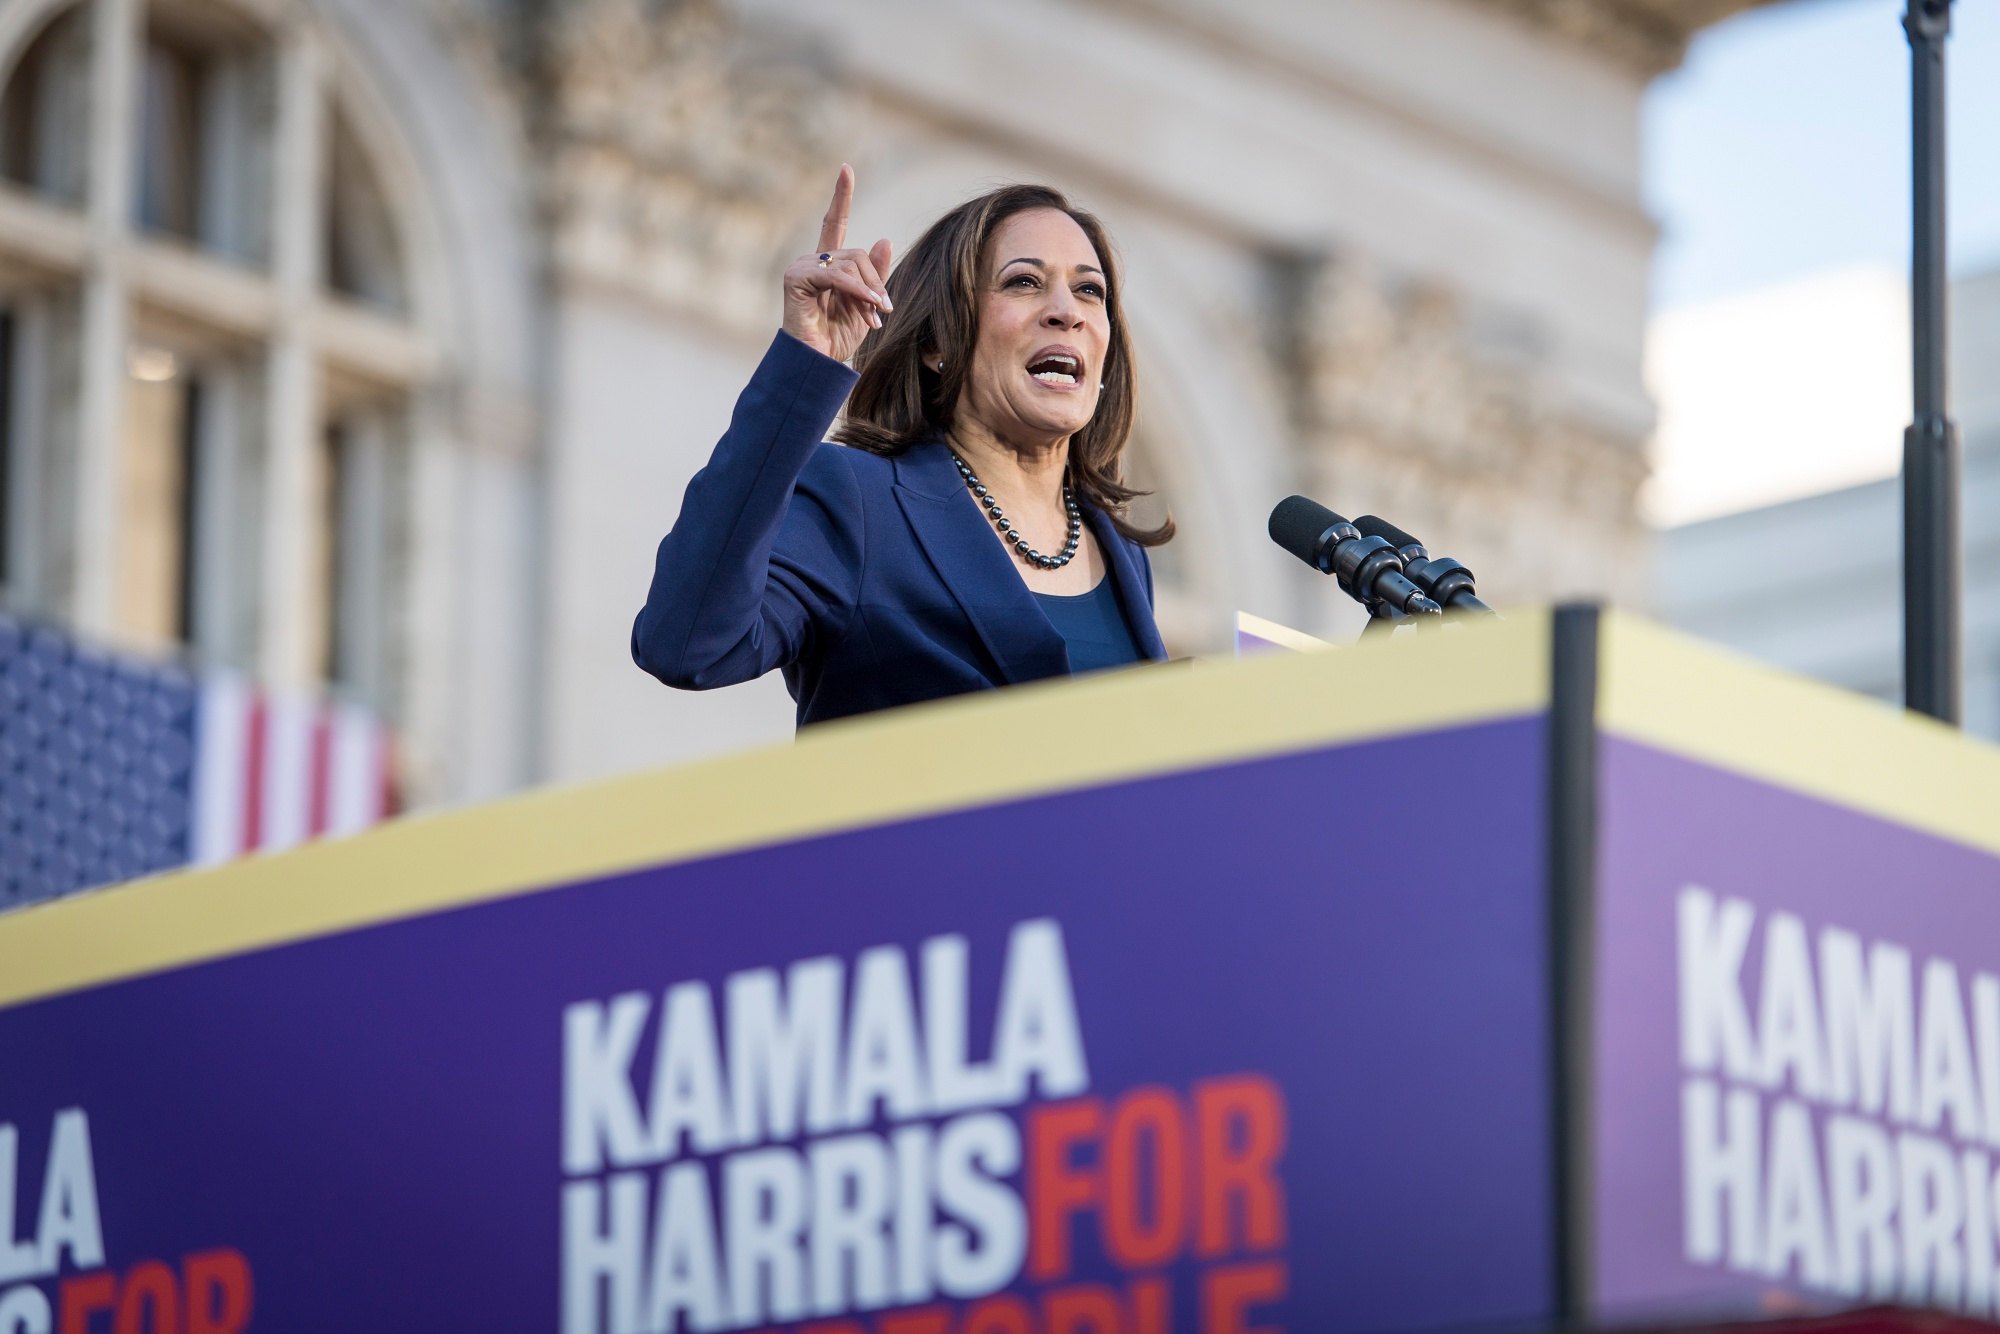 Kamala Harris S Presidential Campaign Owes 1 1 Million To Vendors Bloomberg